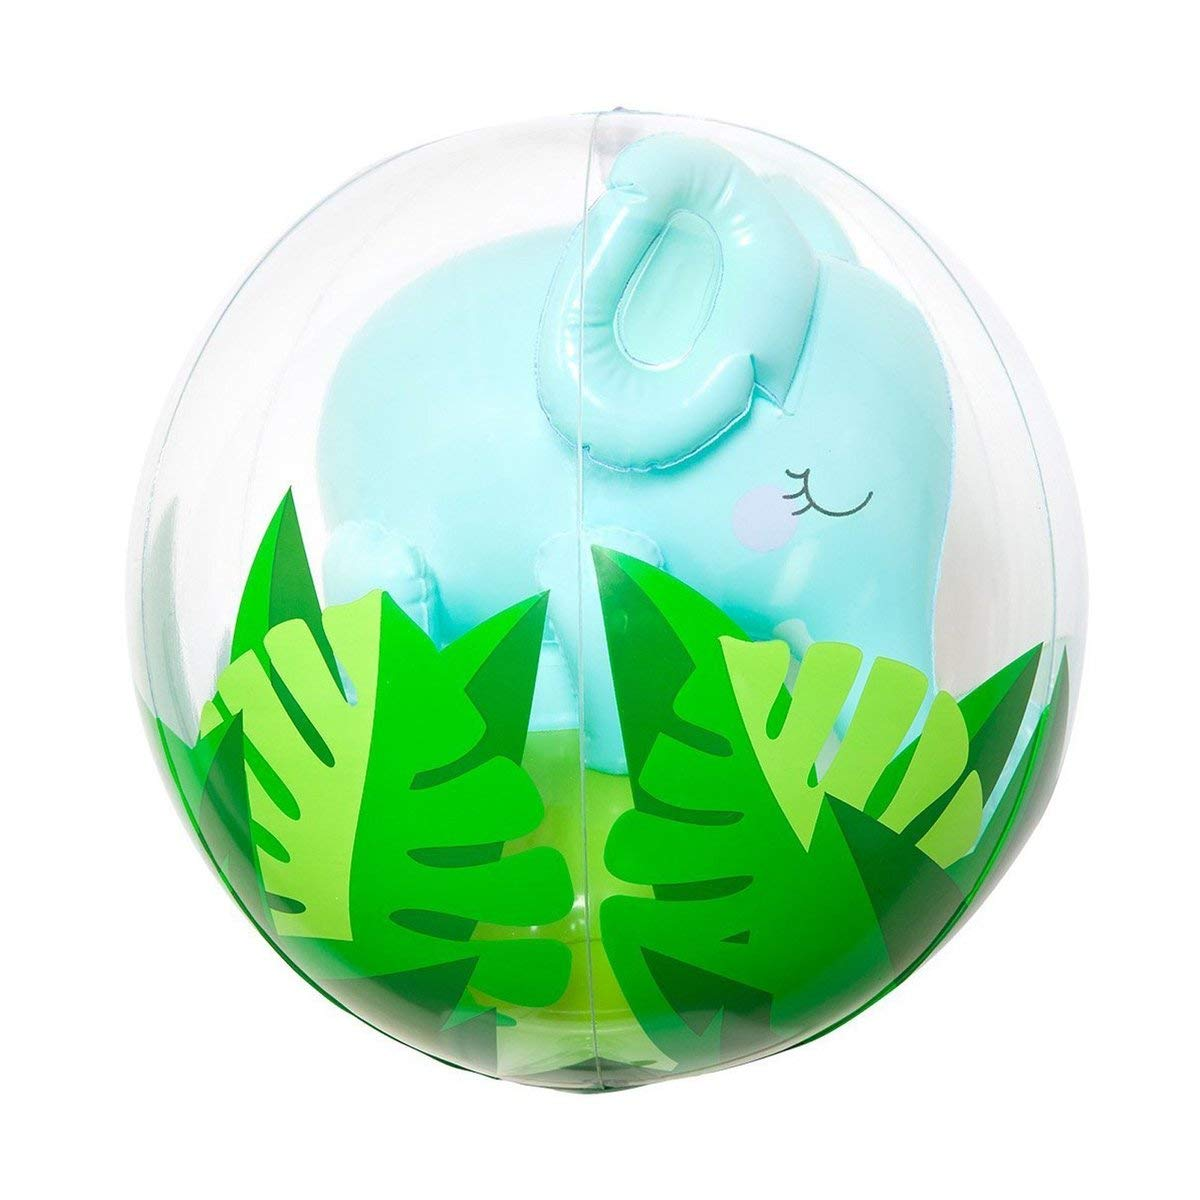 Sunnylife Classic Large Inflatable Round Beach Ball Summer Pool Toy S8MBAMCR